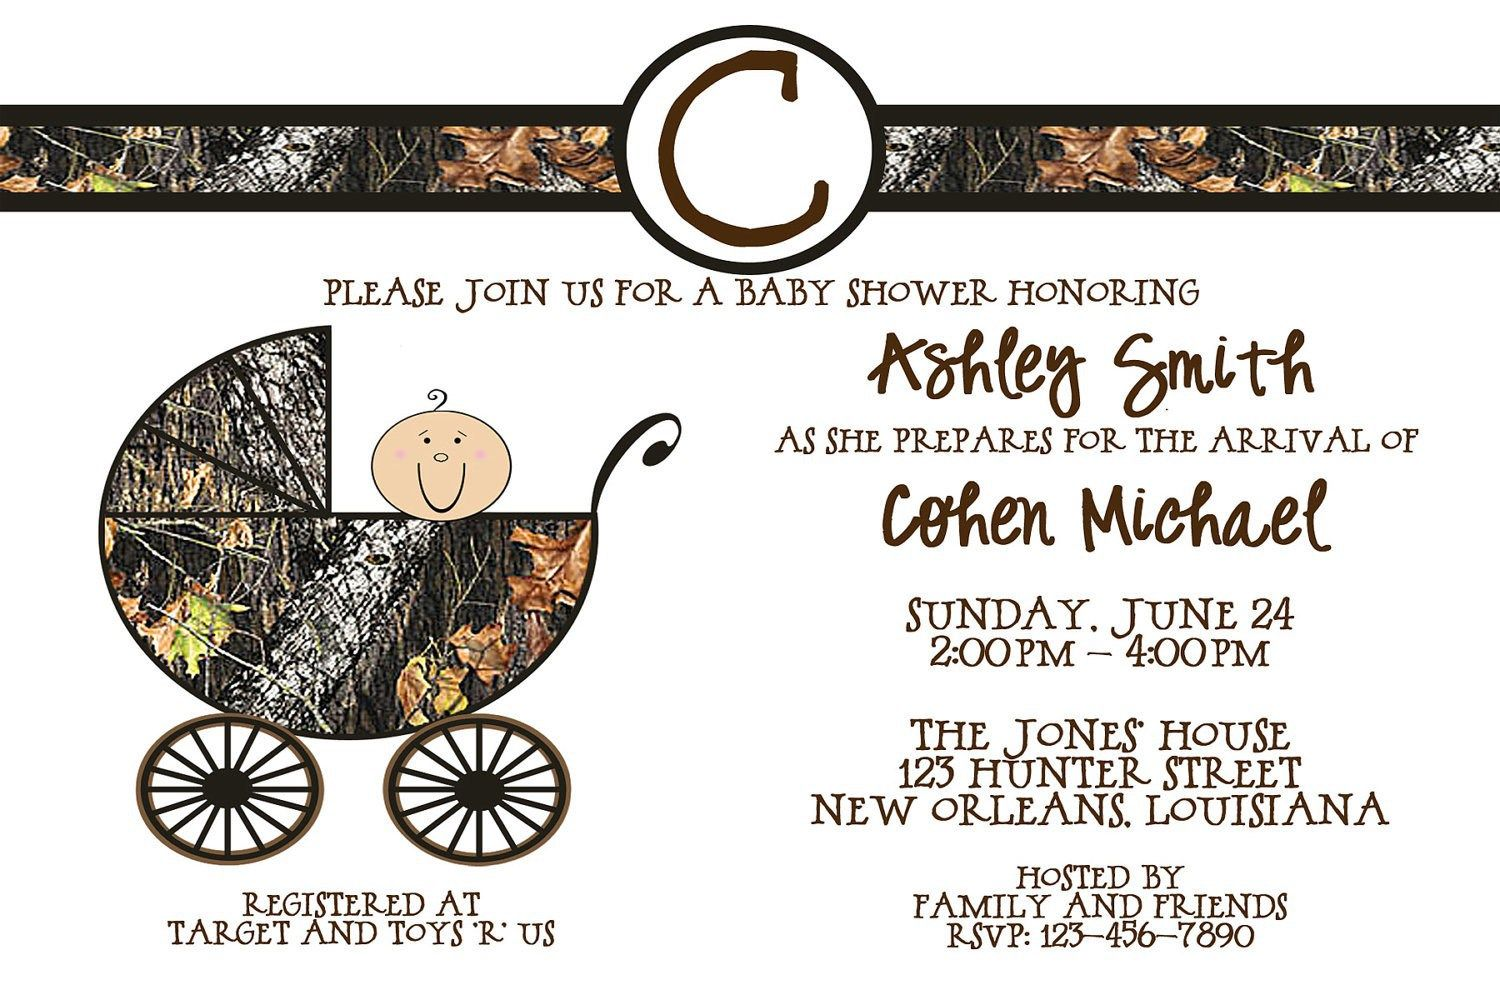 Free printable camouflage invitations free printable camo baby mossy oak camo carriage baby shower by lovebandpdesigns on etsy filmwisefo